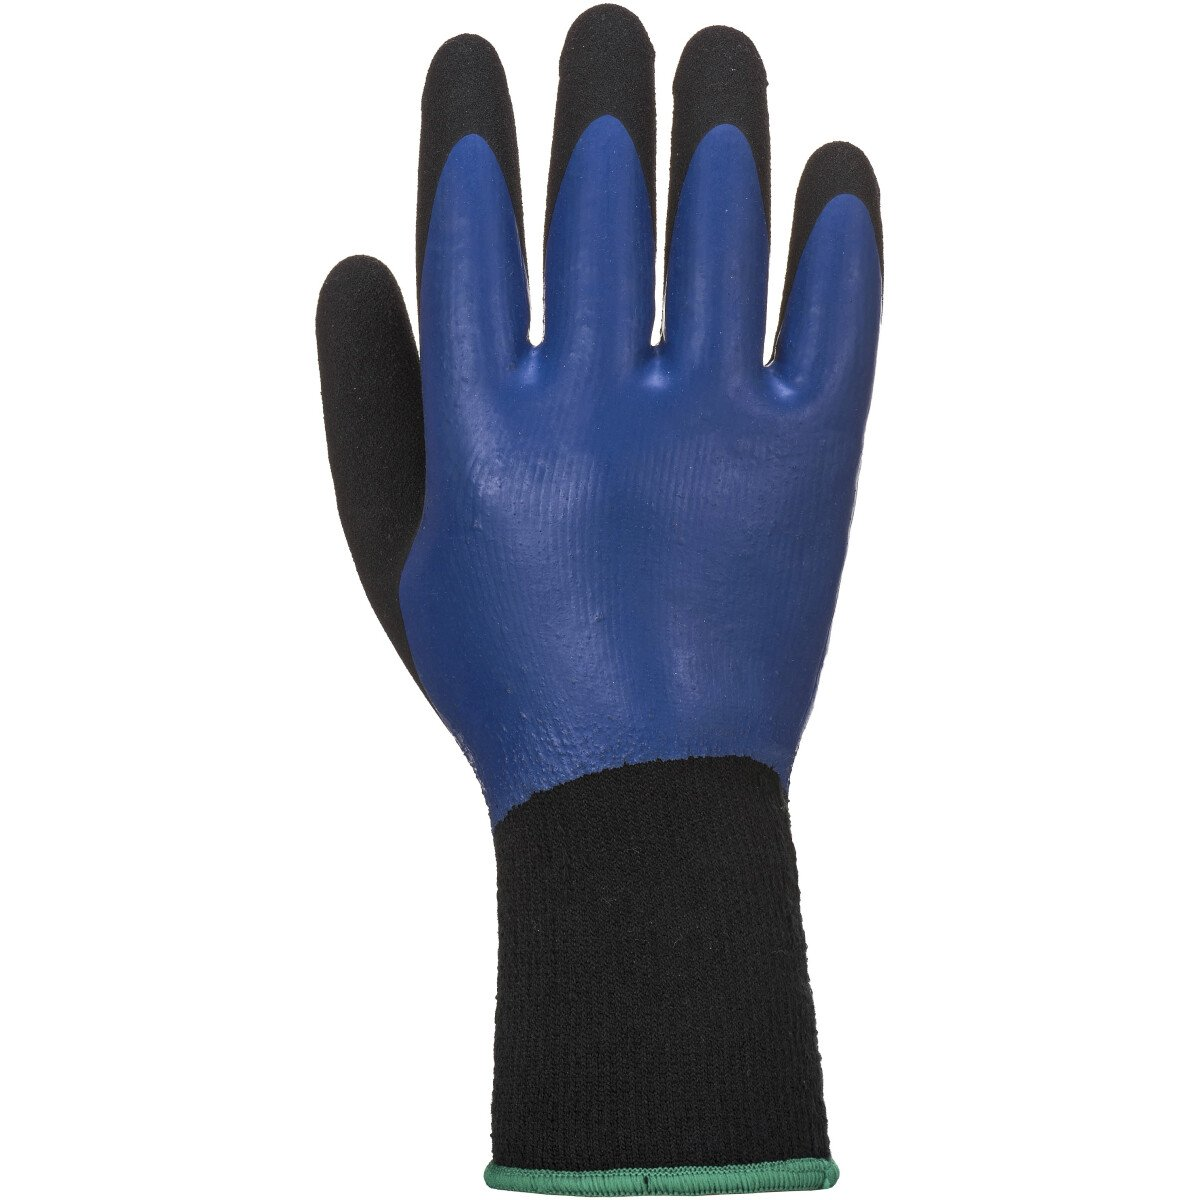 Portwest AP01 Thermo Pro Glove - Thermal Protection Gloves - Blue/Black